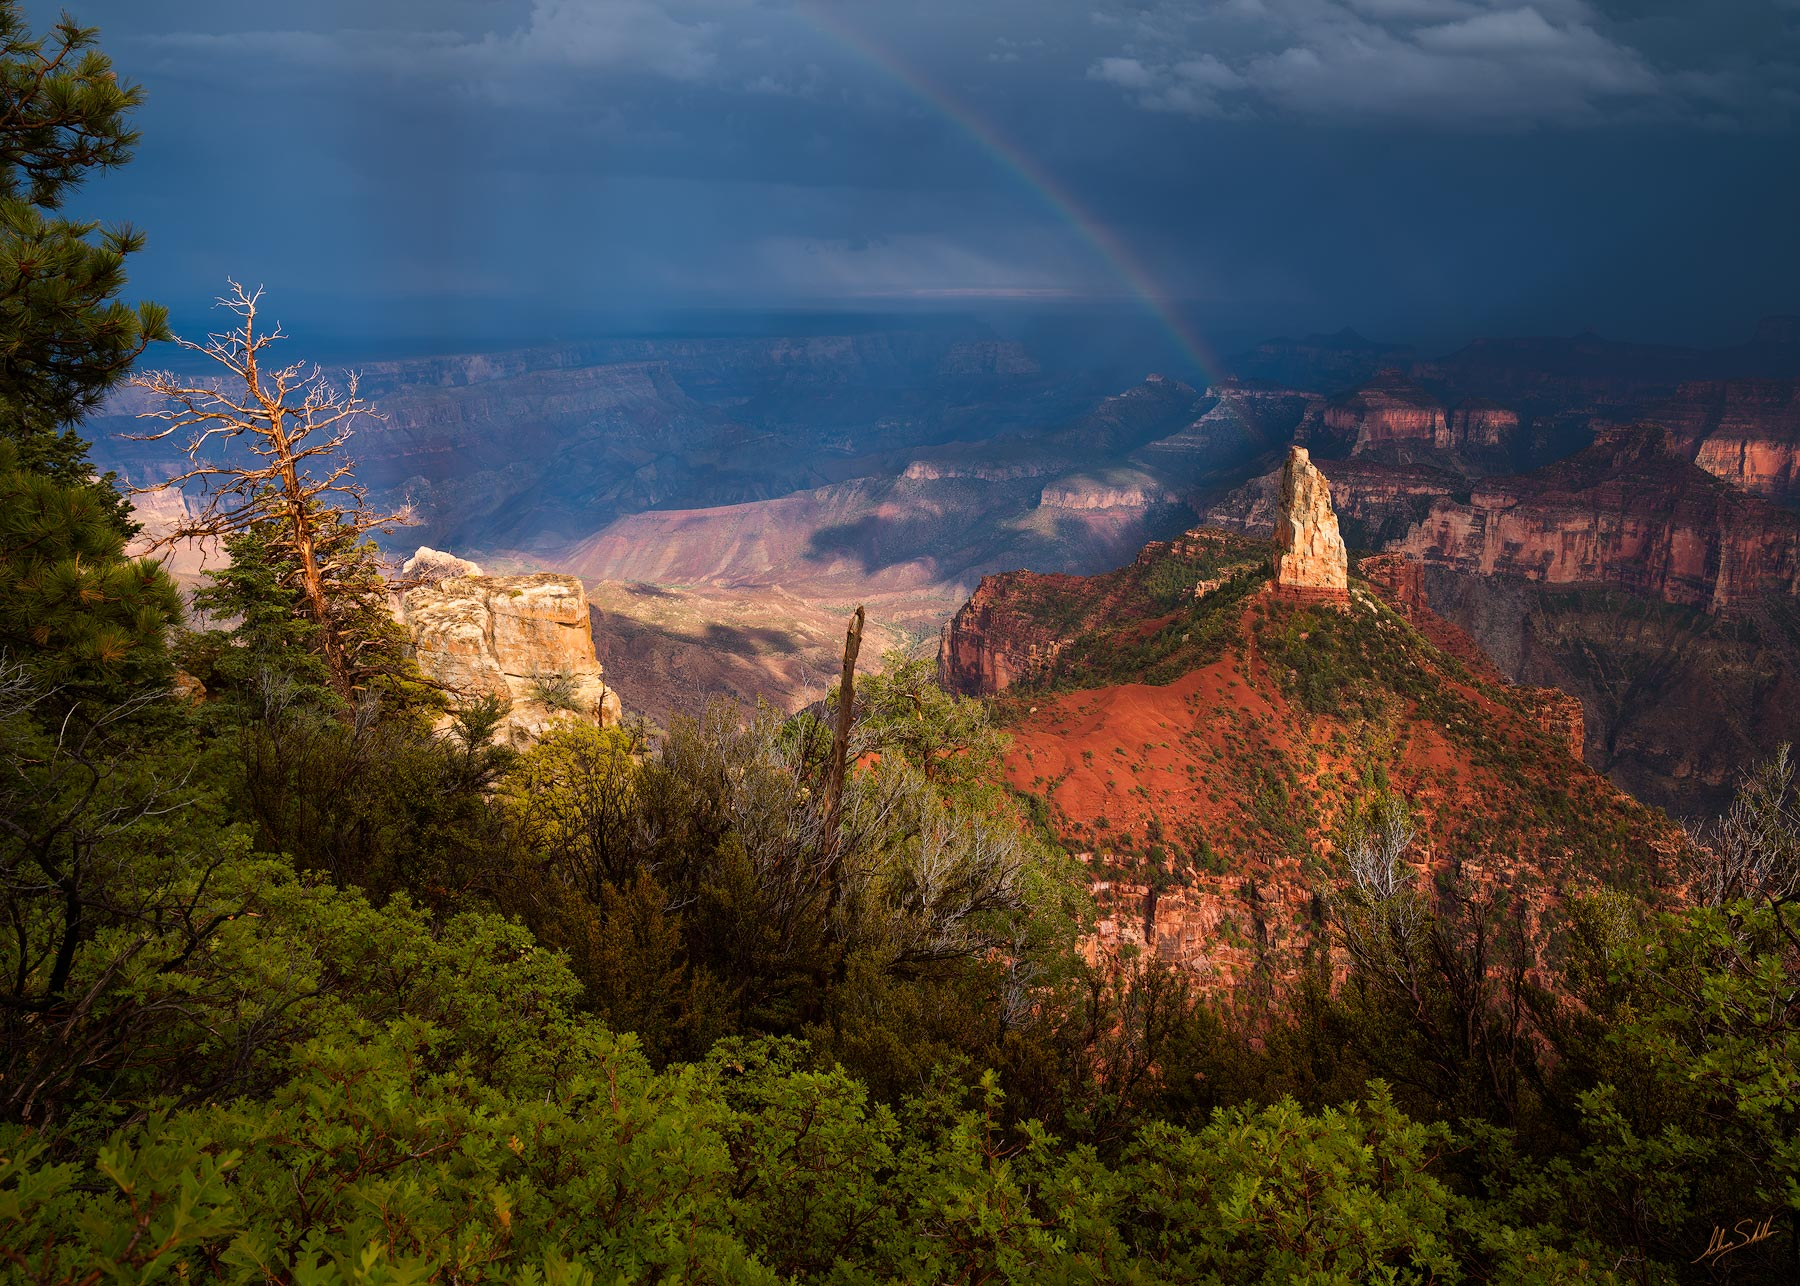 Arizona, Colorado Plateau, Grand Canyon, Monsoon, Mount Hayden, National Park, North Rim, Point Imperial, Rainbow, photo